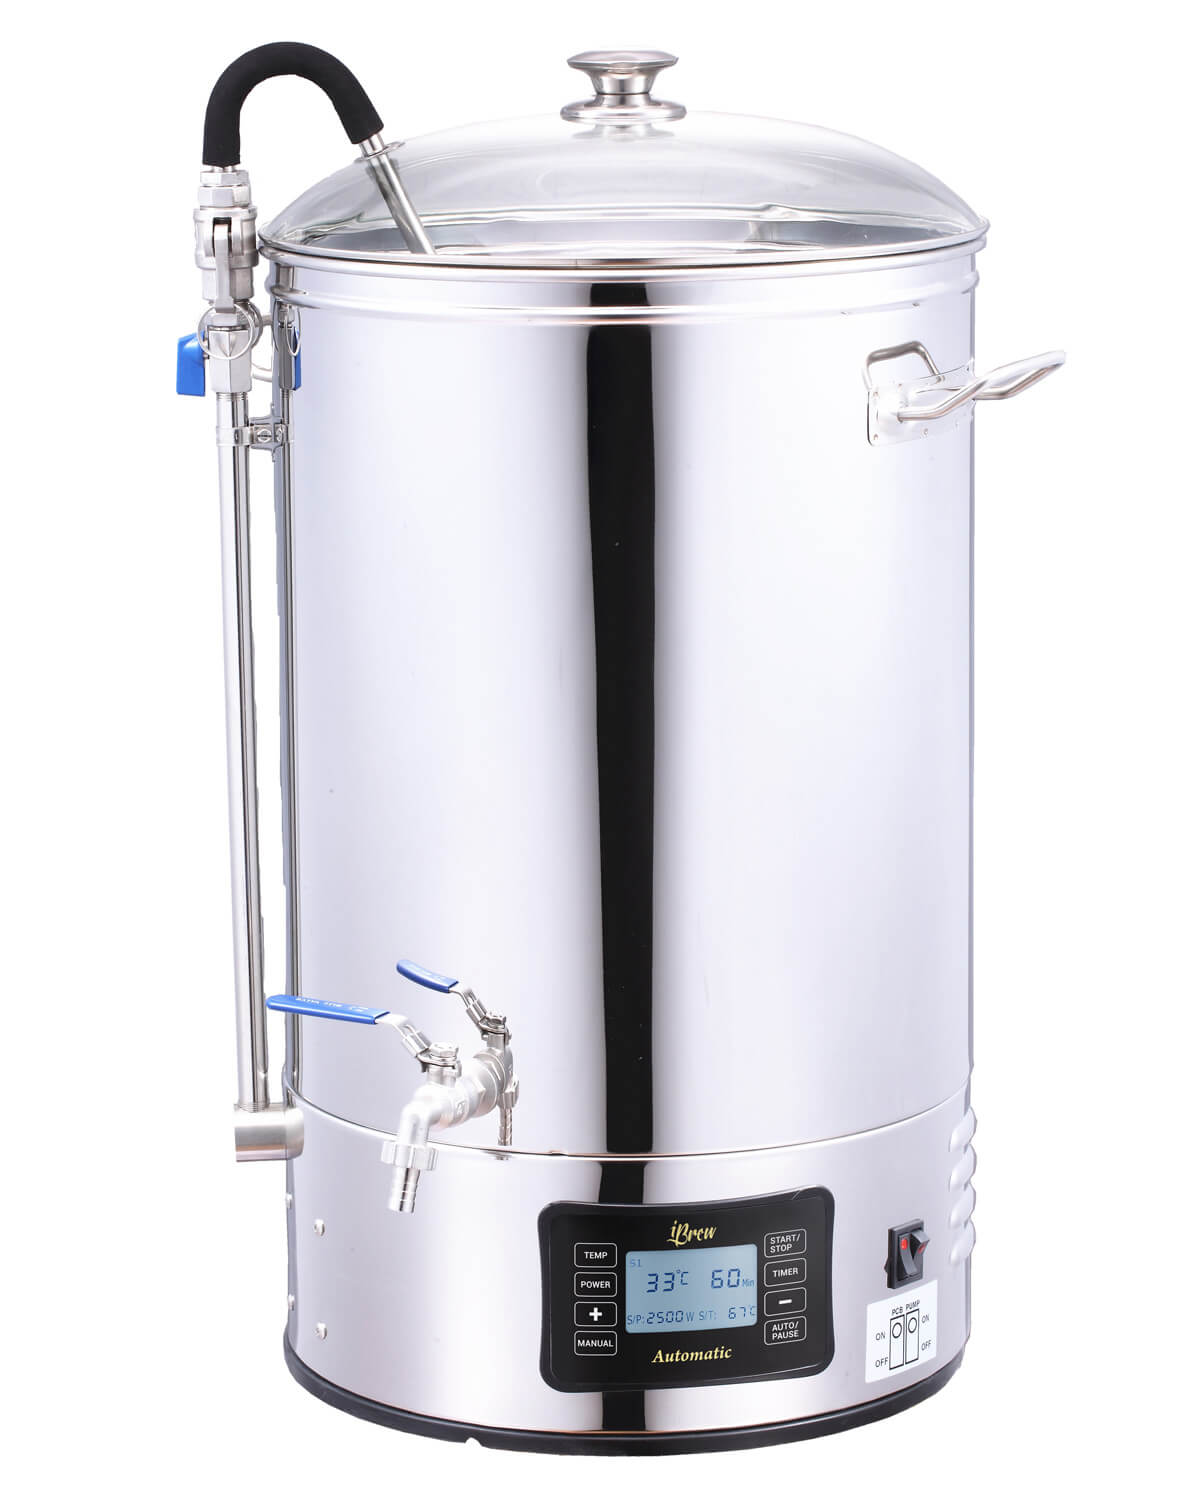 iBrew 40 Mk2 Nový model